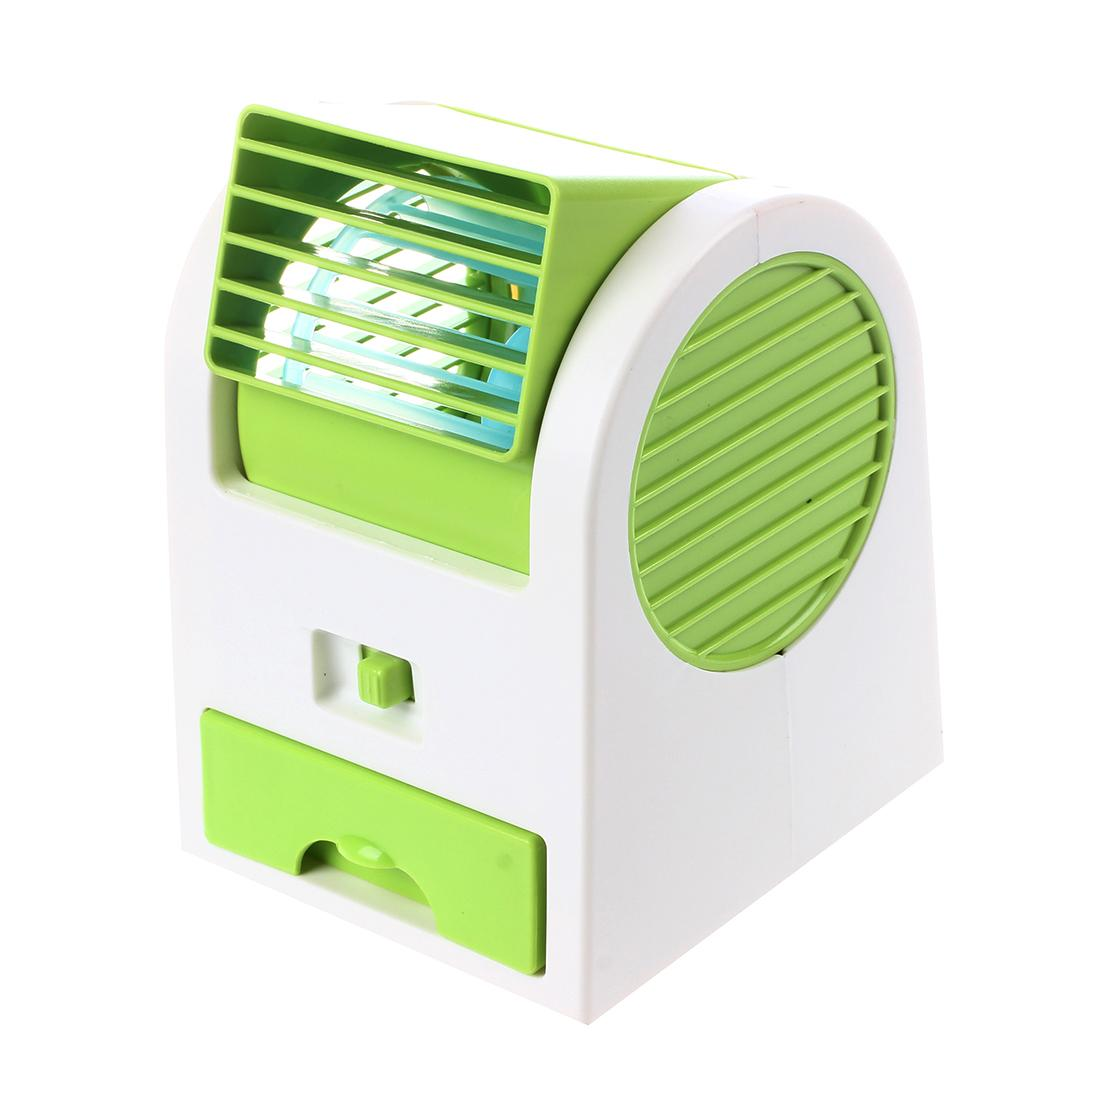 Adjustable Angles Scented USB Electric Air Conditioning Mini Fan Air Cooler Green&white